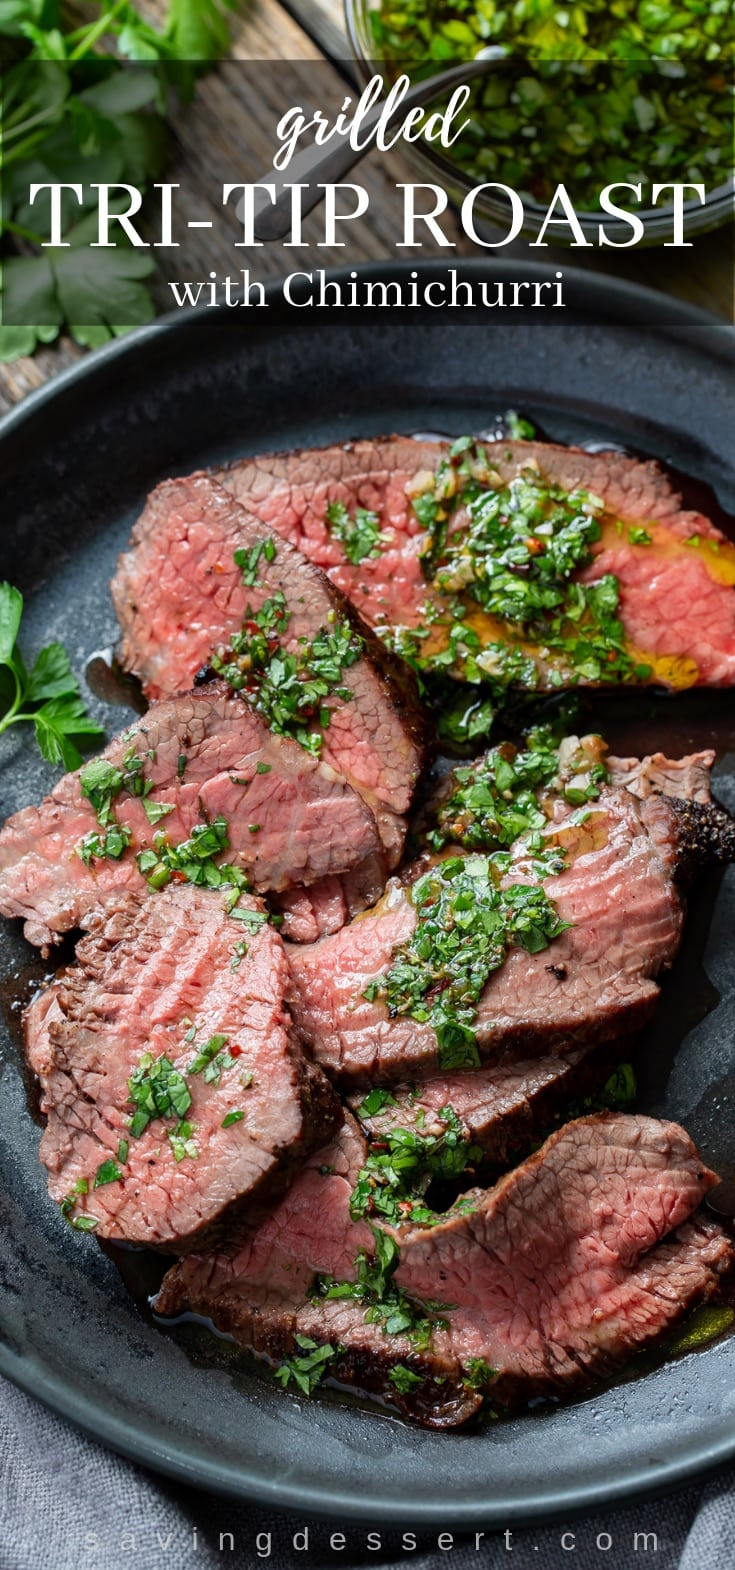 A plate with sliced grilled Tri-Tip Roast and chimichurri sauce